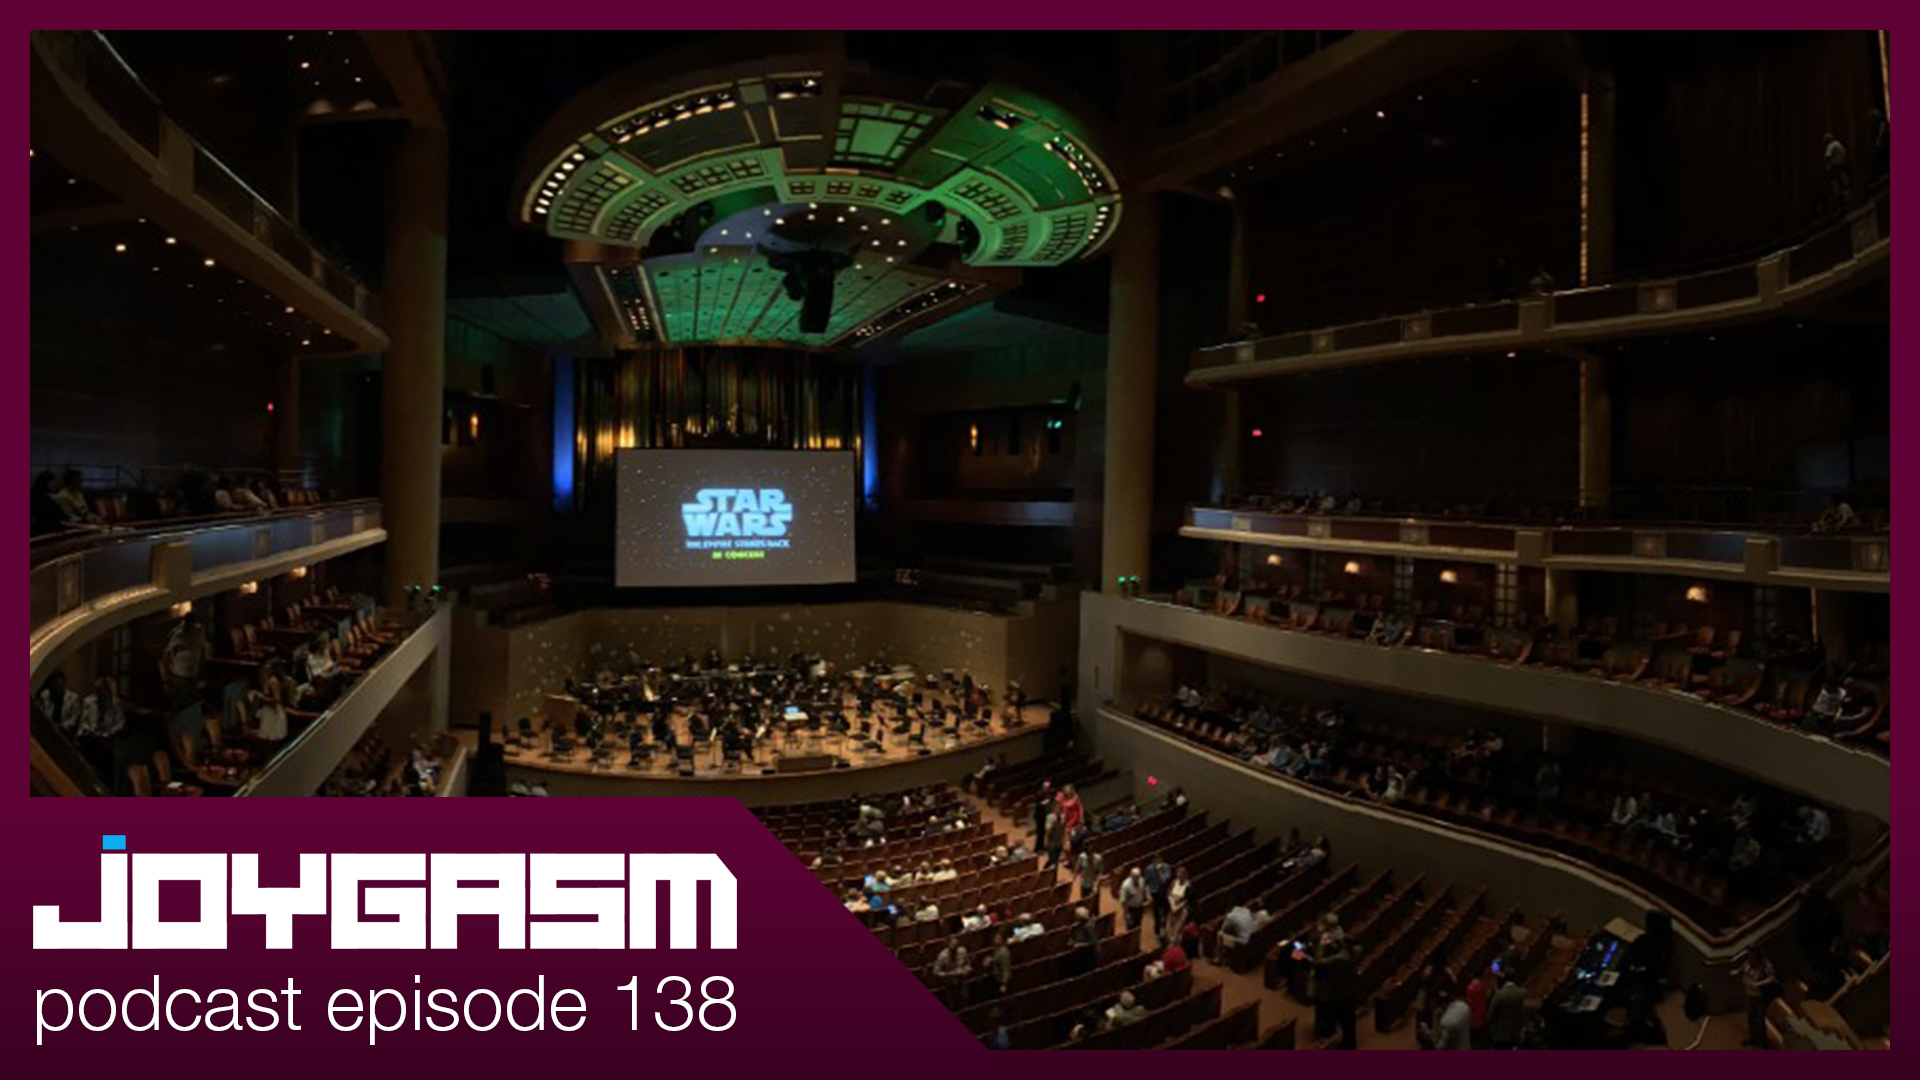 Ep. 138: The Empire Strikes Back Performed By The Dallas Symphony & More